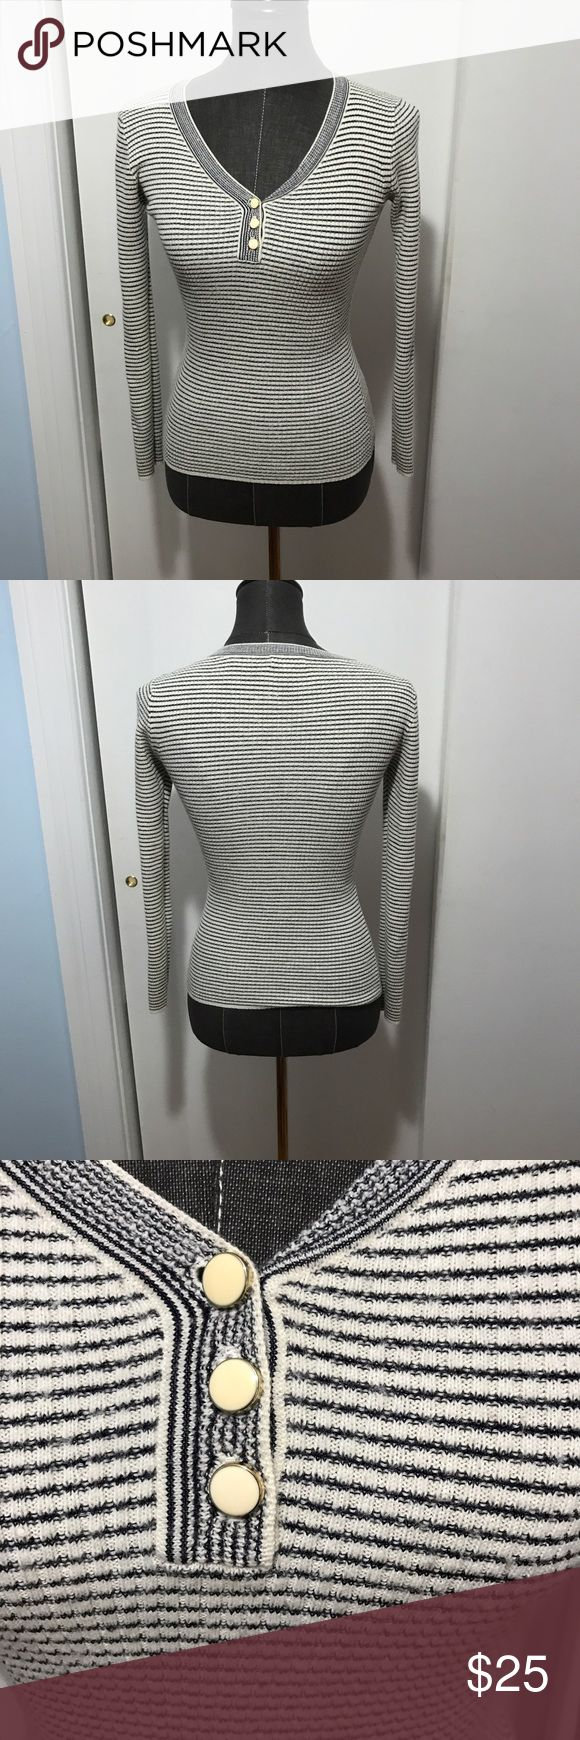 Reiss striped knit top sweater pearl buttons small Cute knit by Reiss in a small but would also fit xs. Good pre-owned condition. Reiss Tops Tees - Long Sleeve